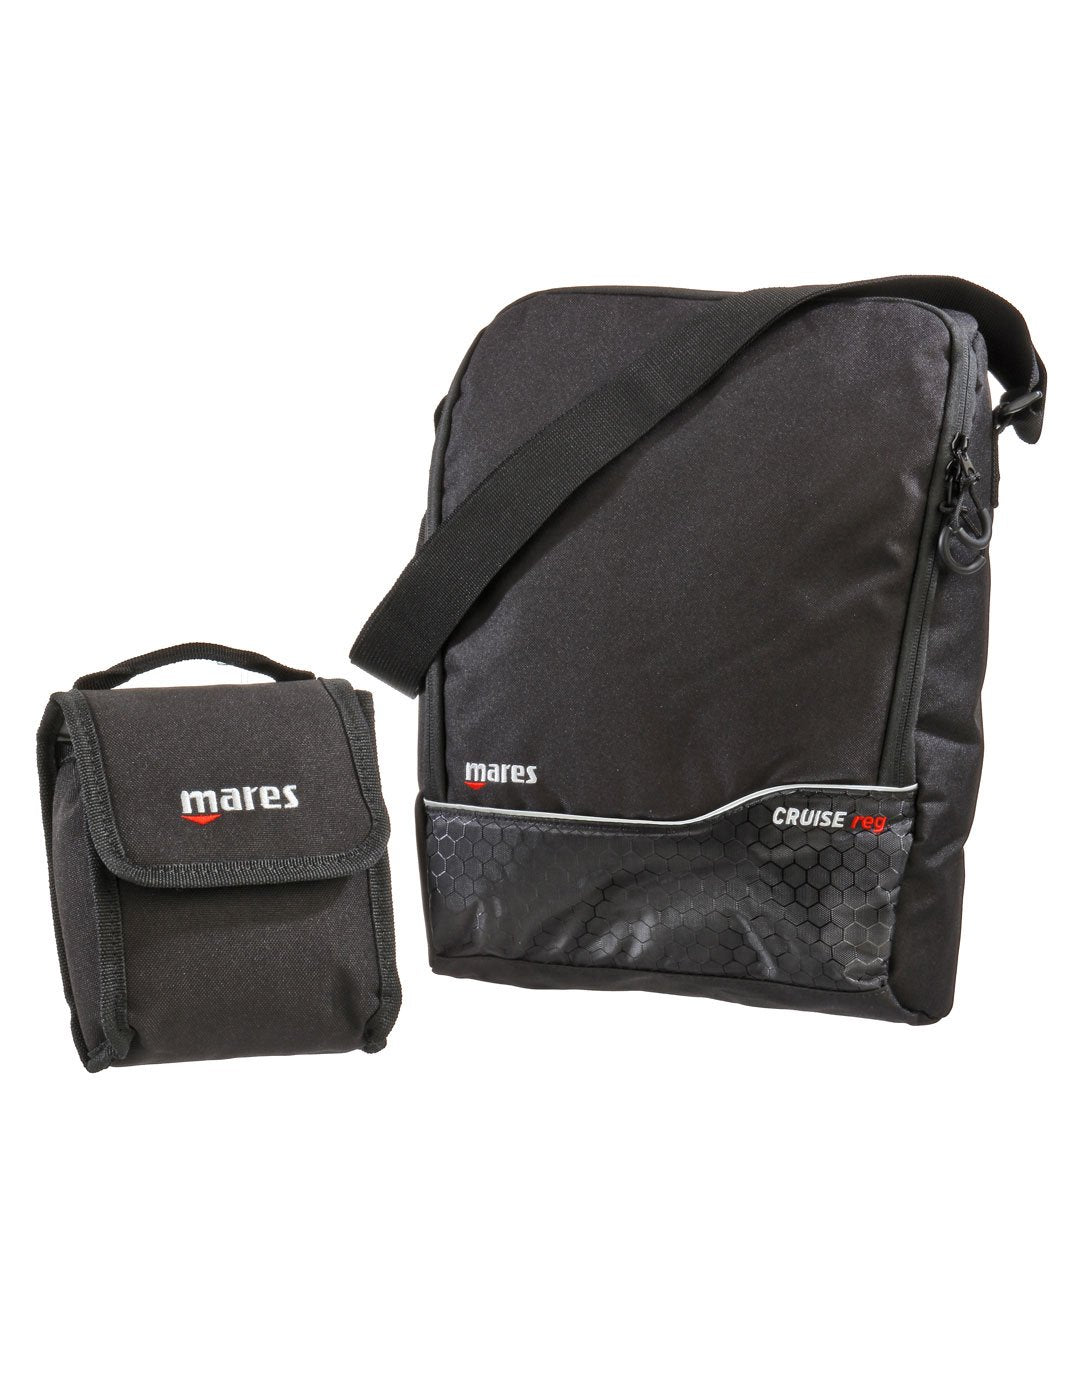 Image of Mares Cruise Reg Bag